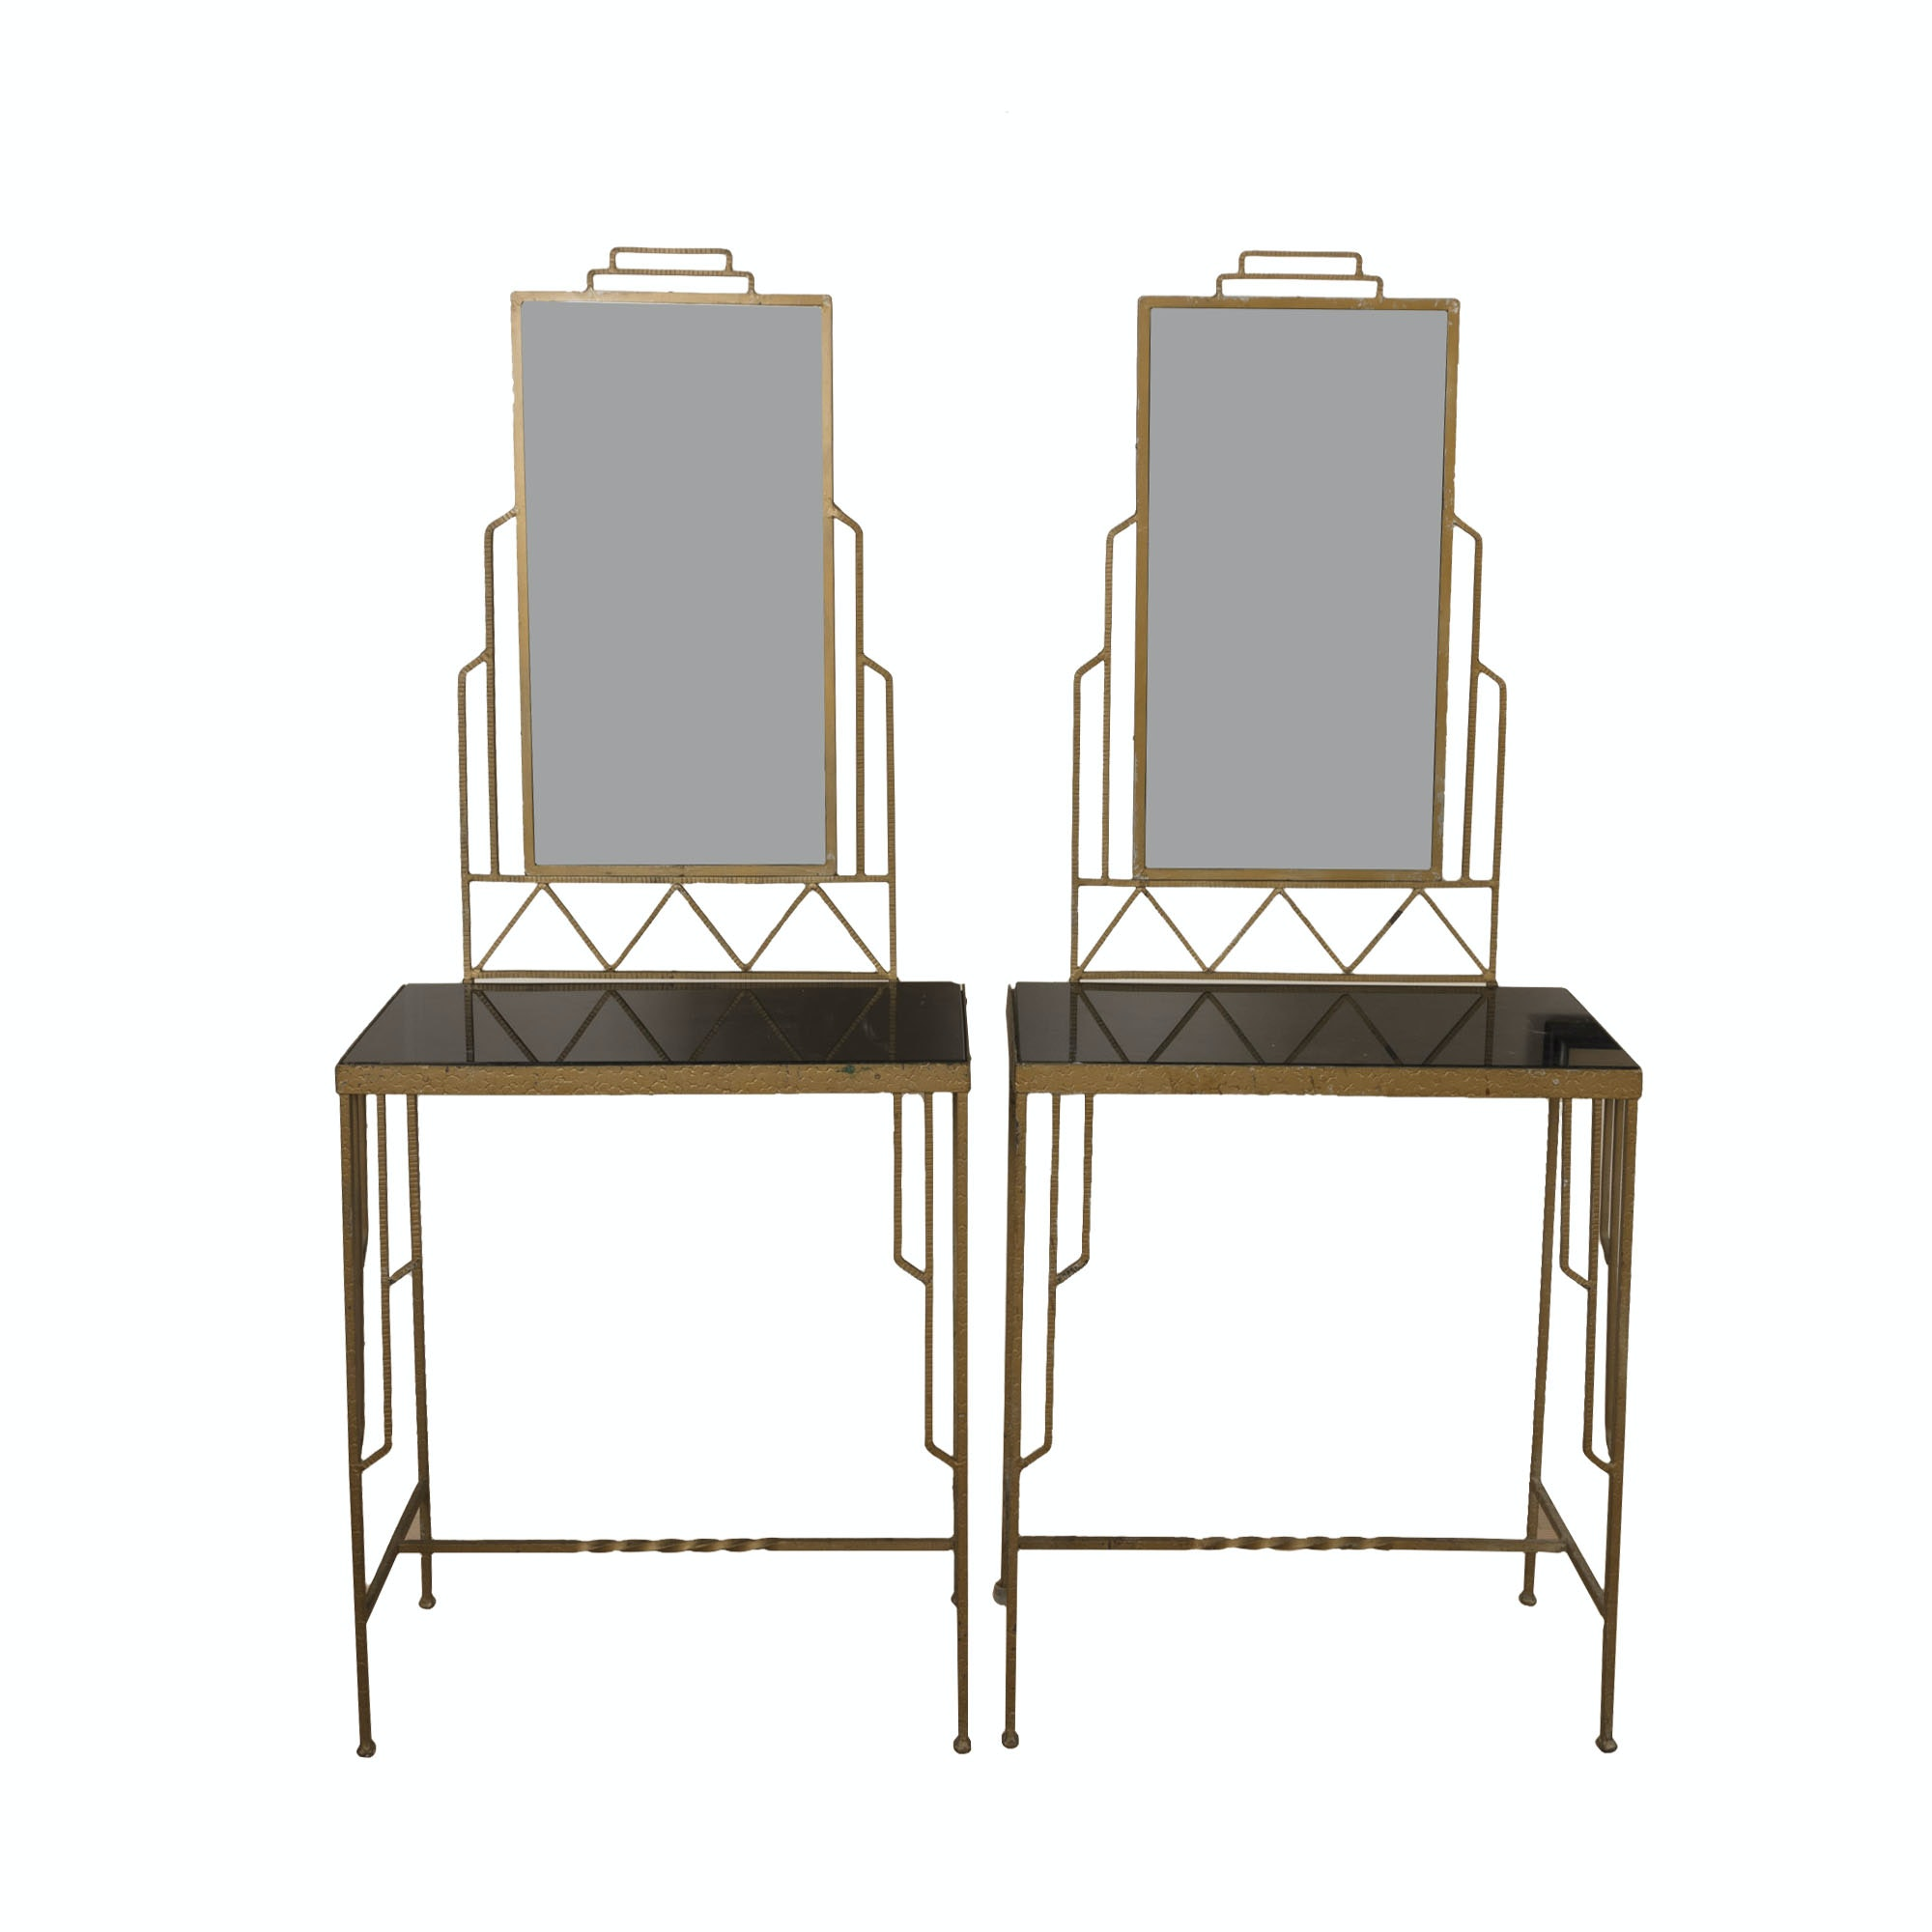 Pair of Art Deco Style Vanity Tables with Mirrors